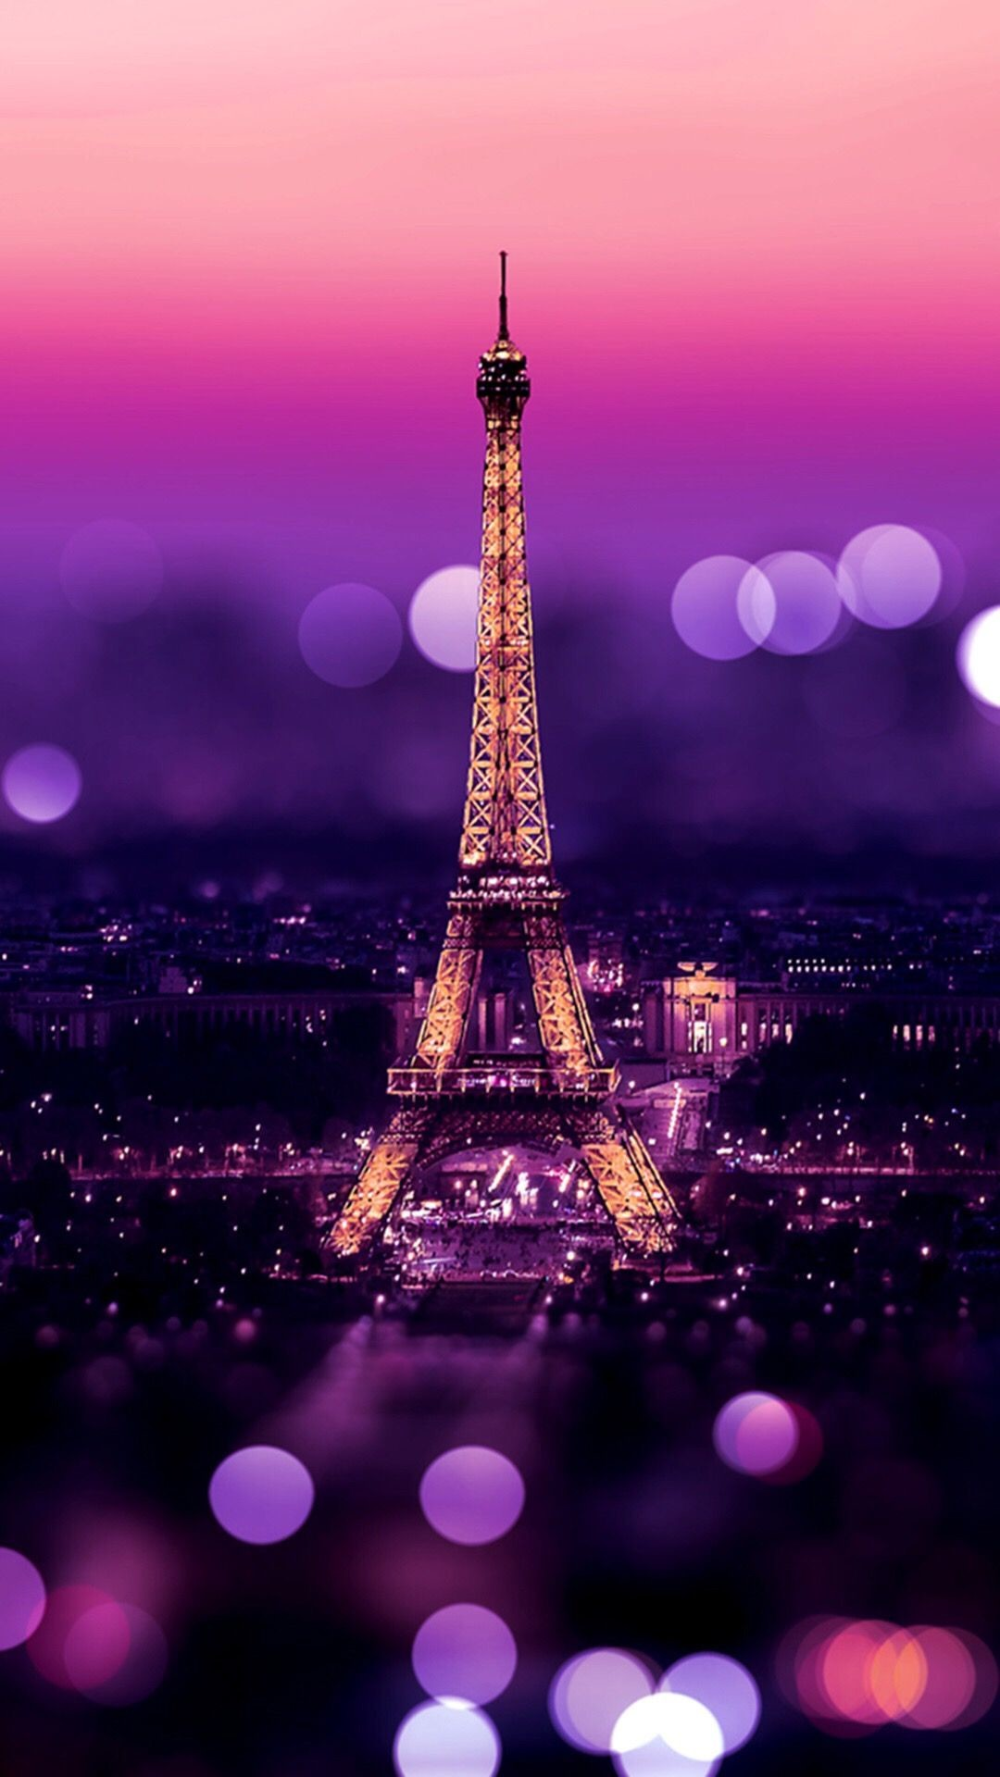 Girly Paris Wallpaper : girly, paris, wallpaper, Girly, Eiffel, Tower, Wallpaper, Images), Paris, Iphone,, Wallpaper,, Photography